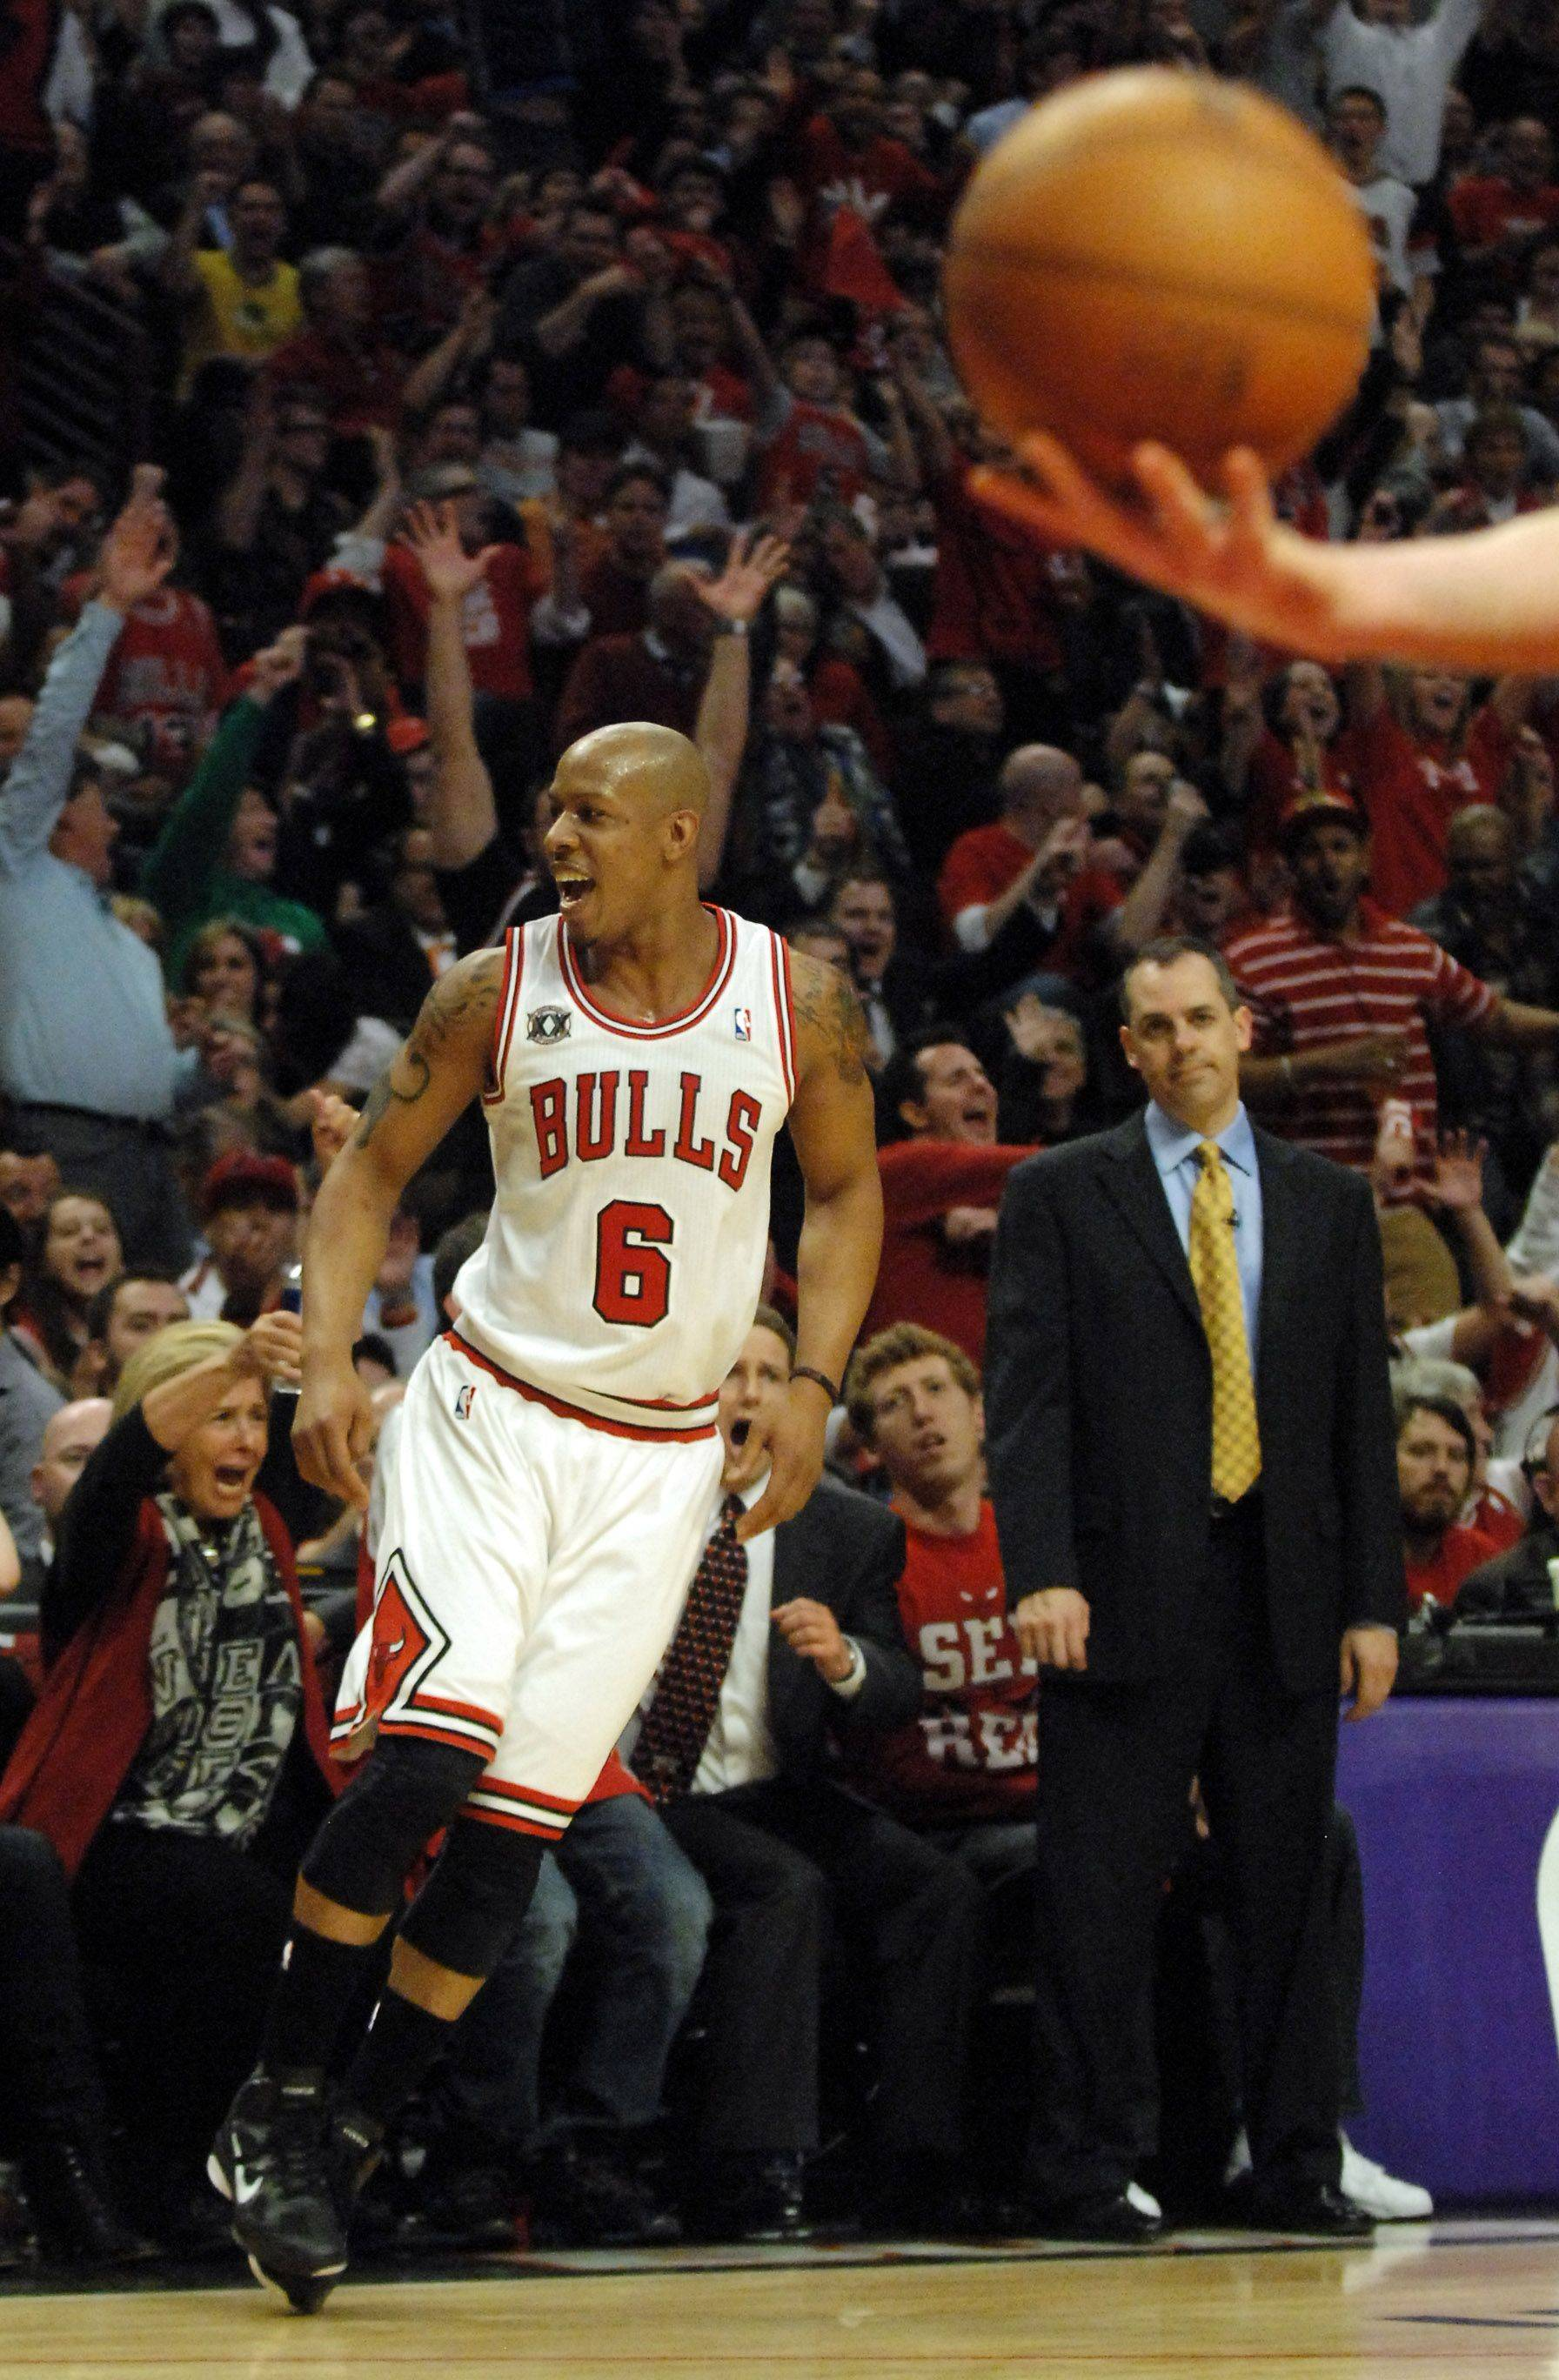 Chicago Bulls guard Keith Bogans celebrates his 5th 3-pointer in front of a chagrined Indiana Pacers head coach Frank Vogel during game 5 of the NBA Eastern Conference quarterfinals in Chicago Tuesday.